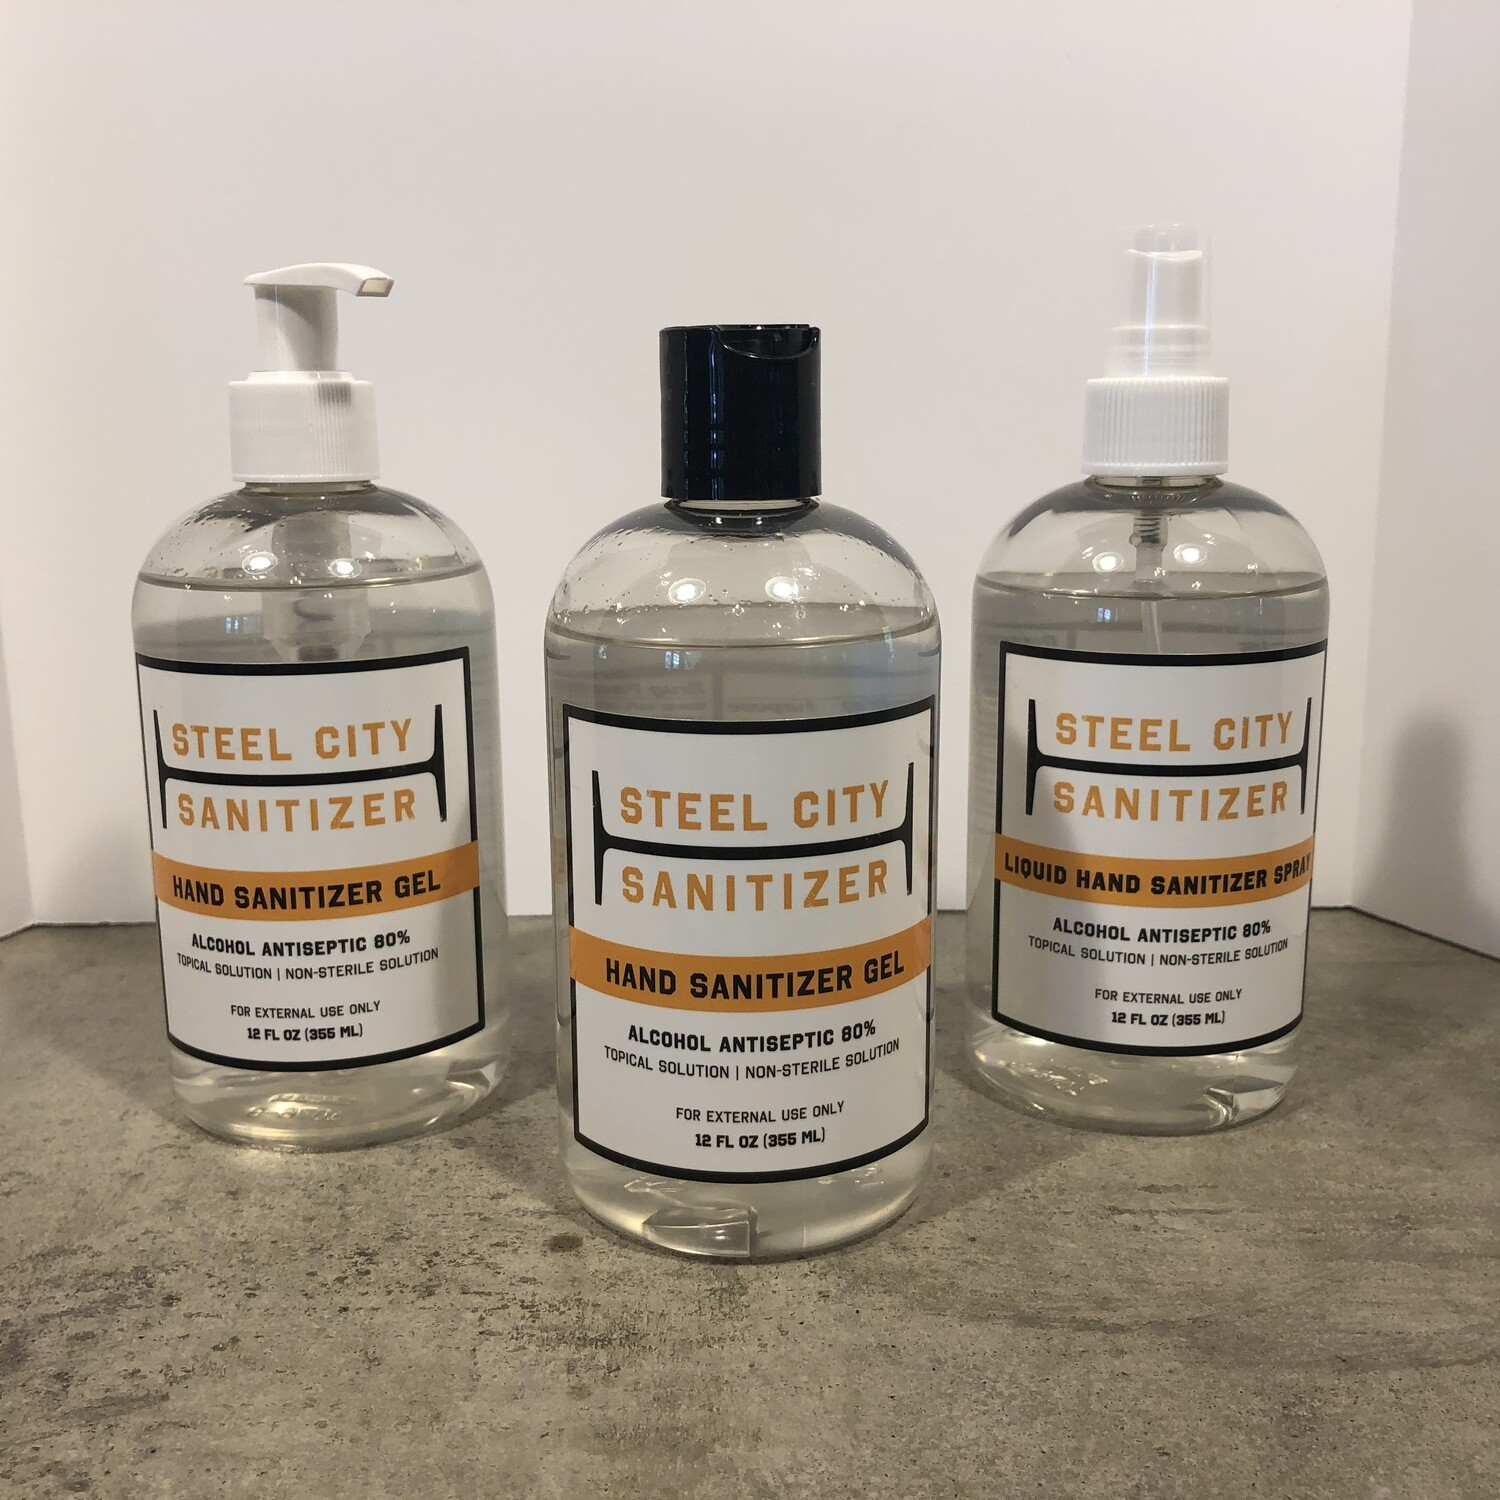 Steel City Sanitizer 12 oz. Sample Pack